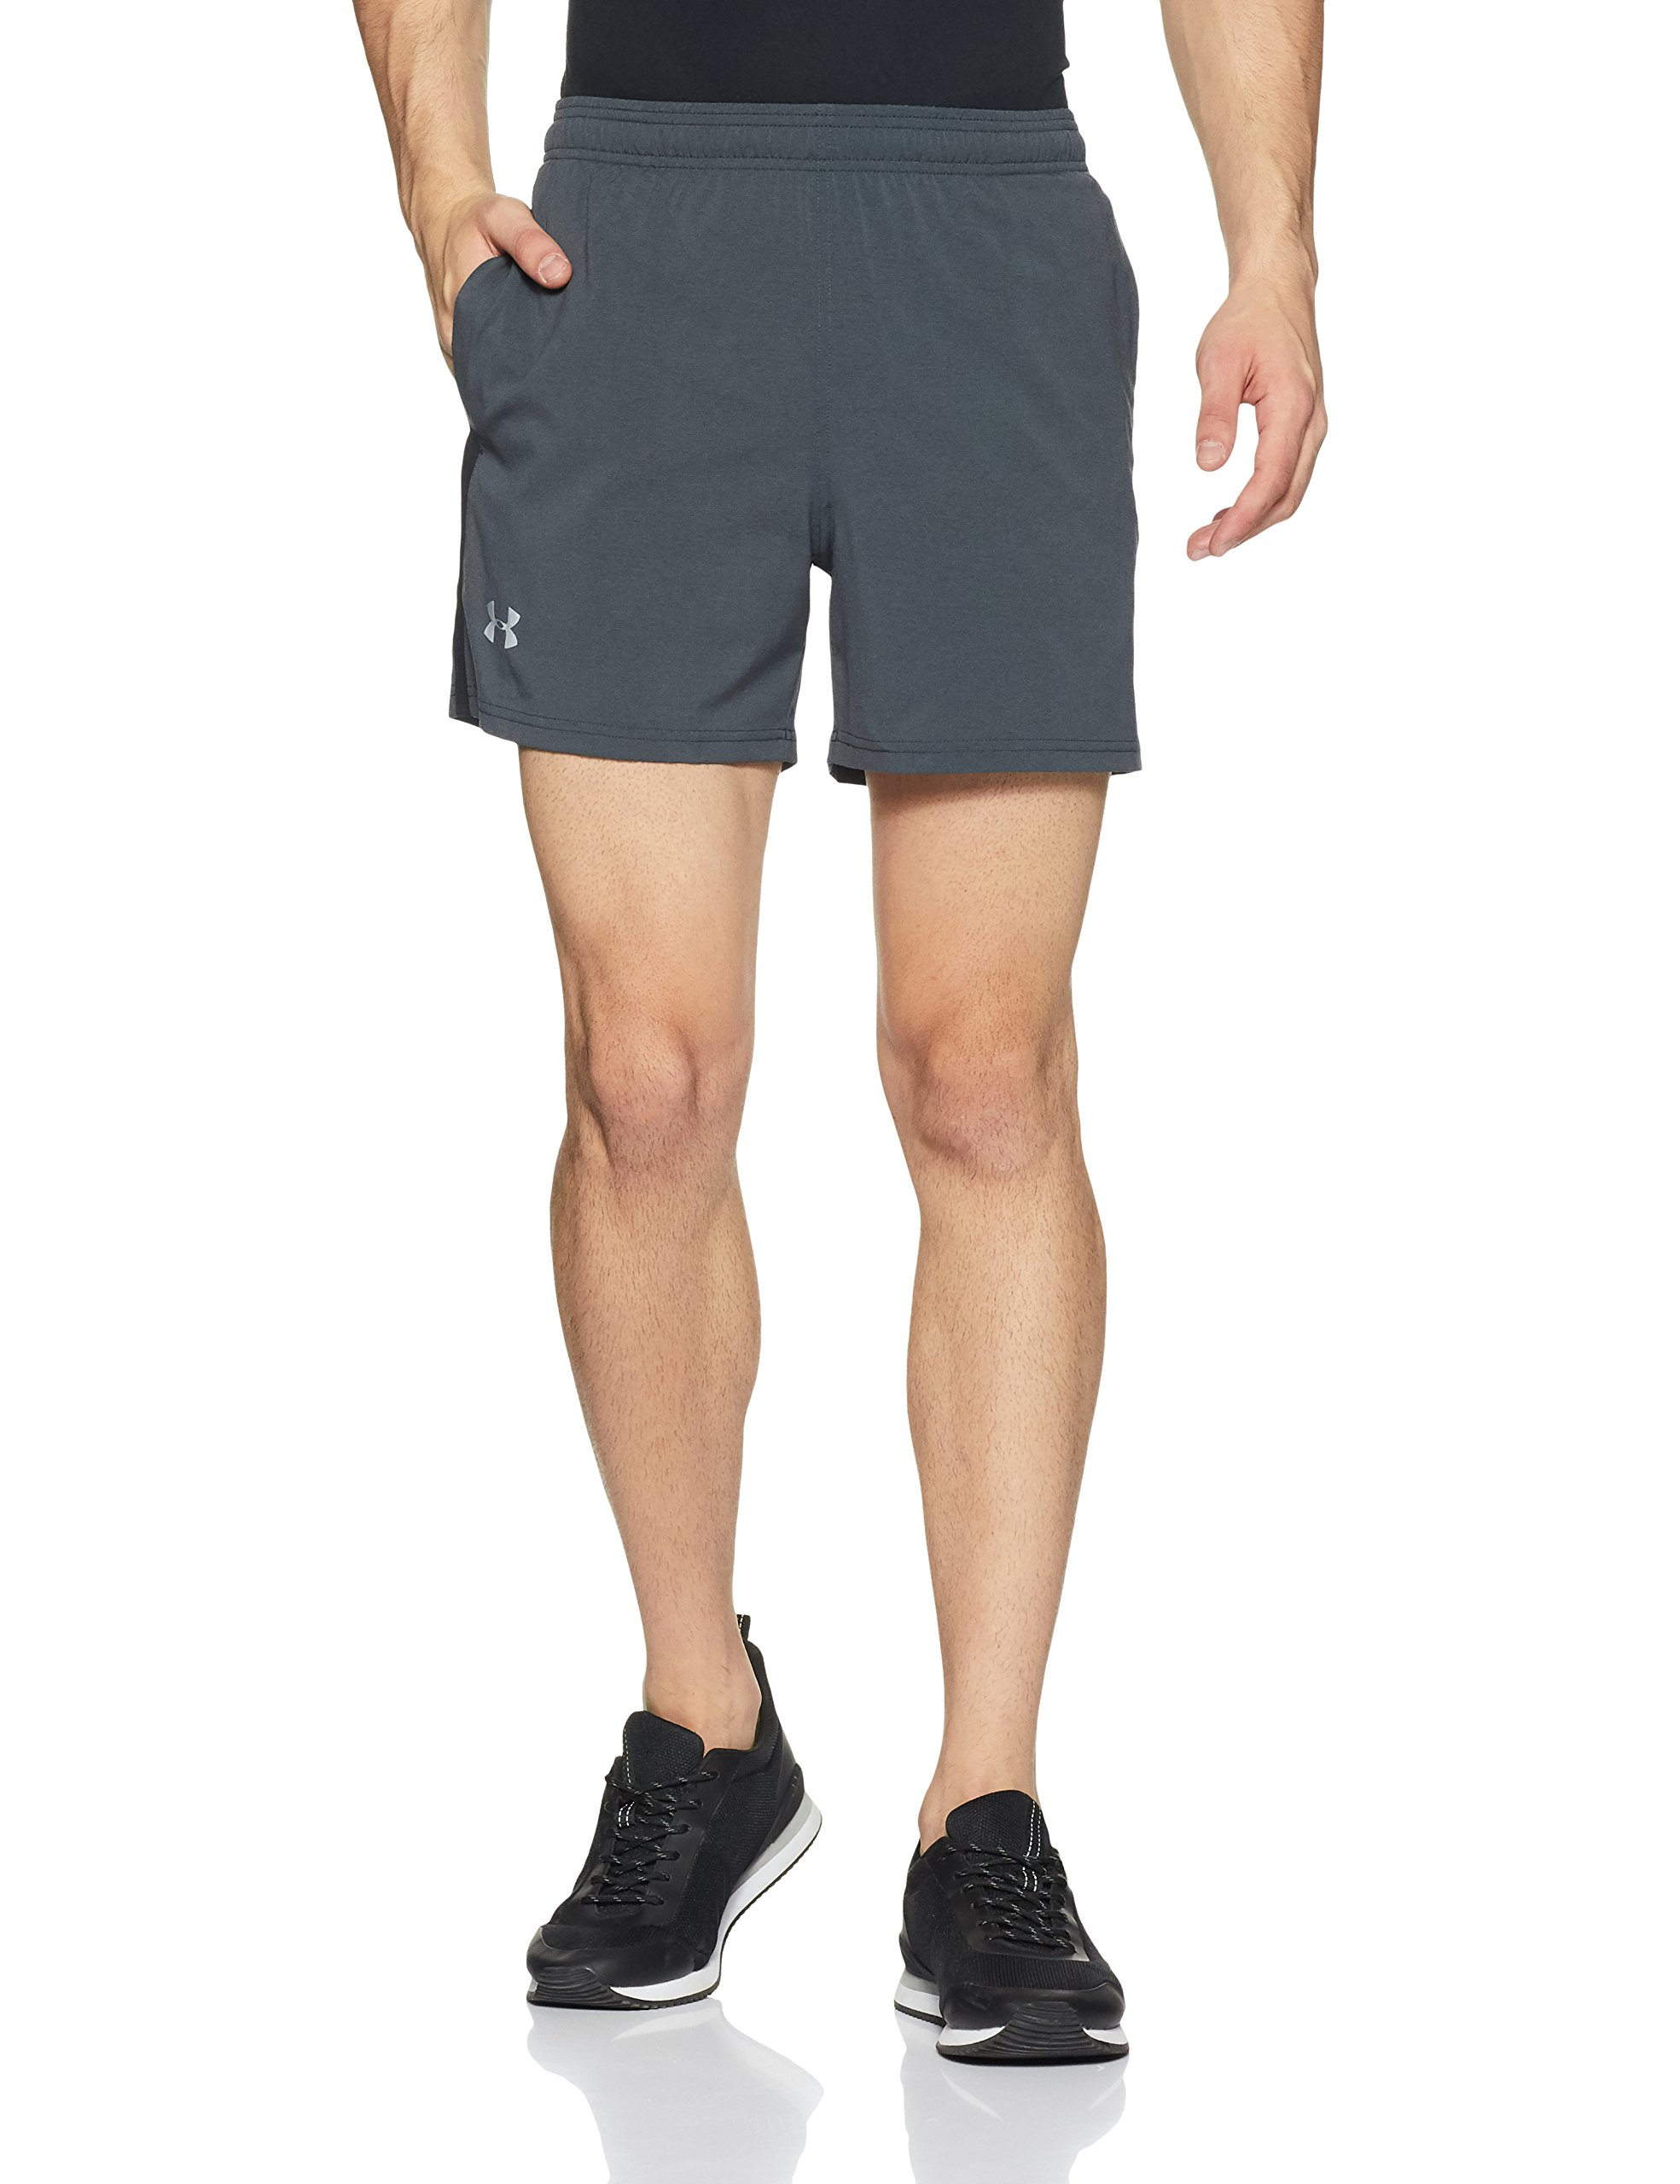 Under Armour Men's Launch 5'' Shorts,Black /Reflective, Medium by Under Armour (Image #1)